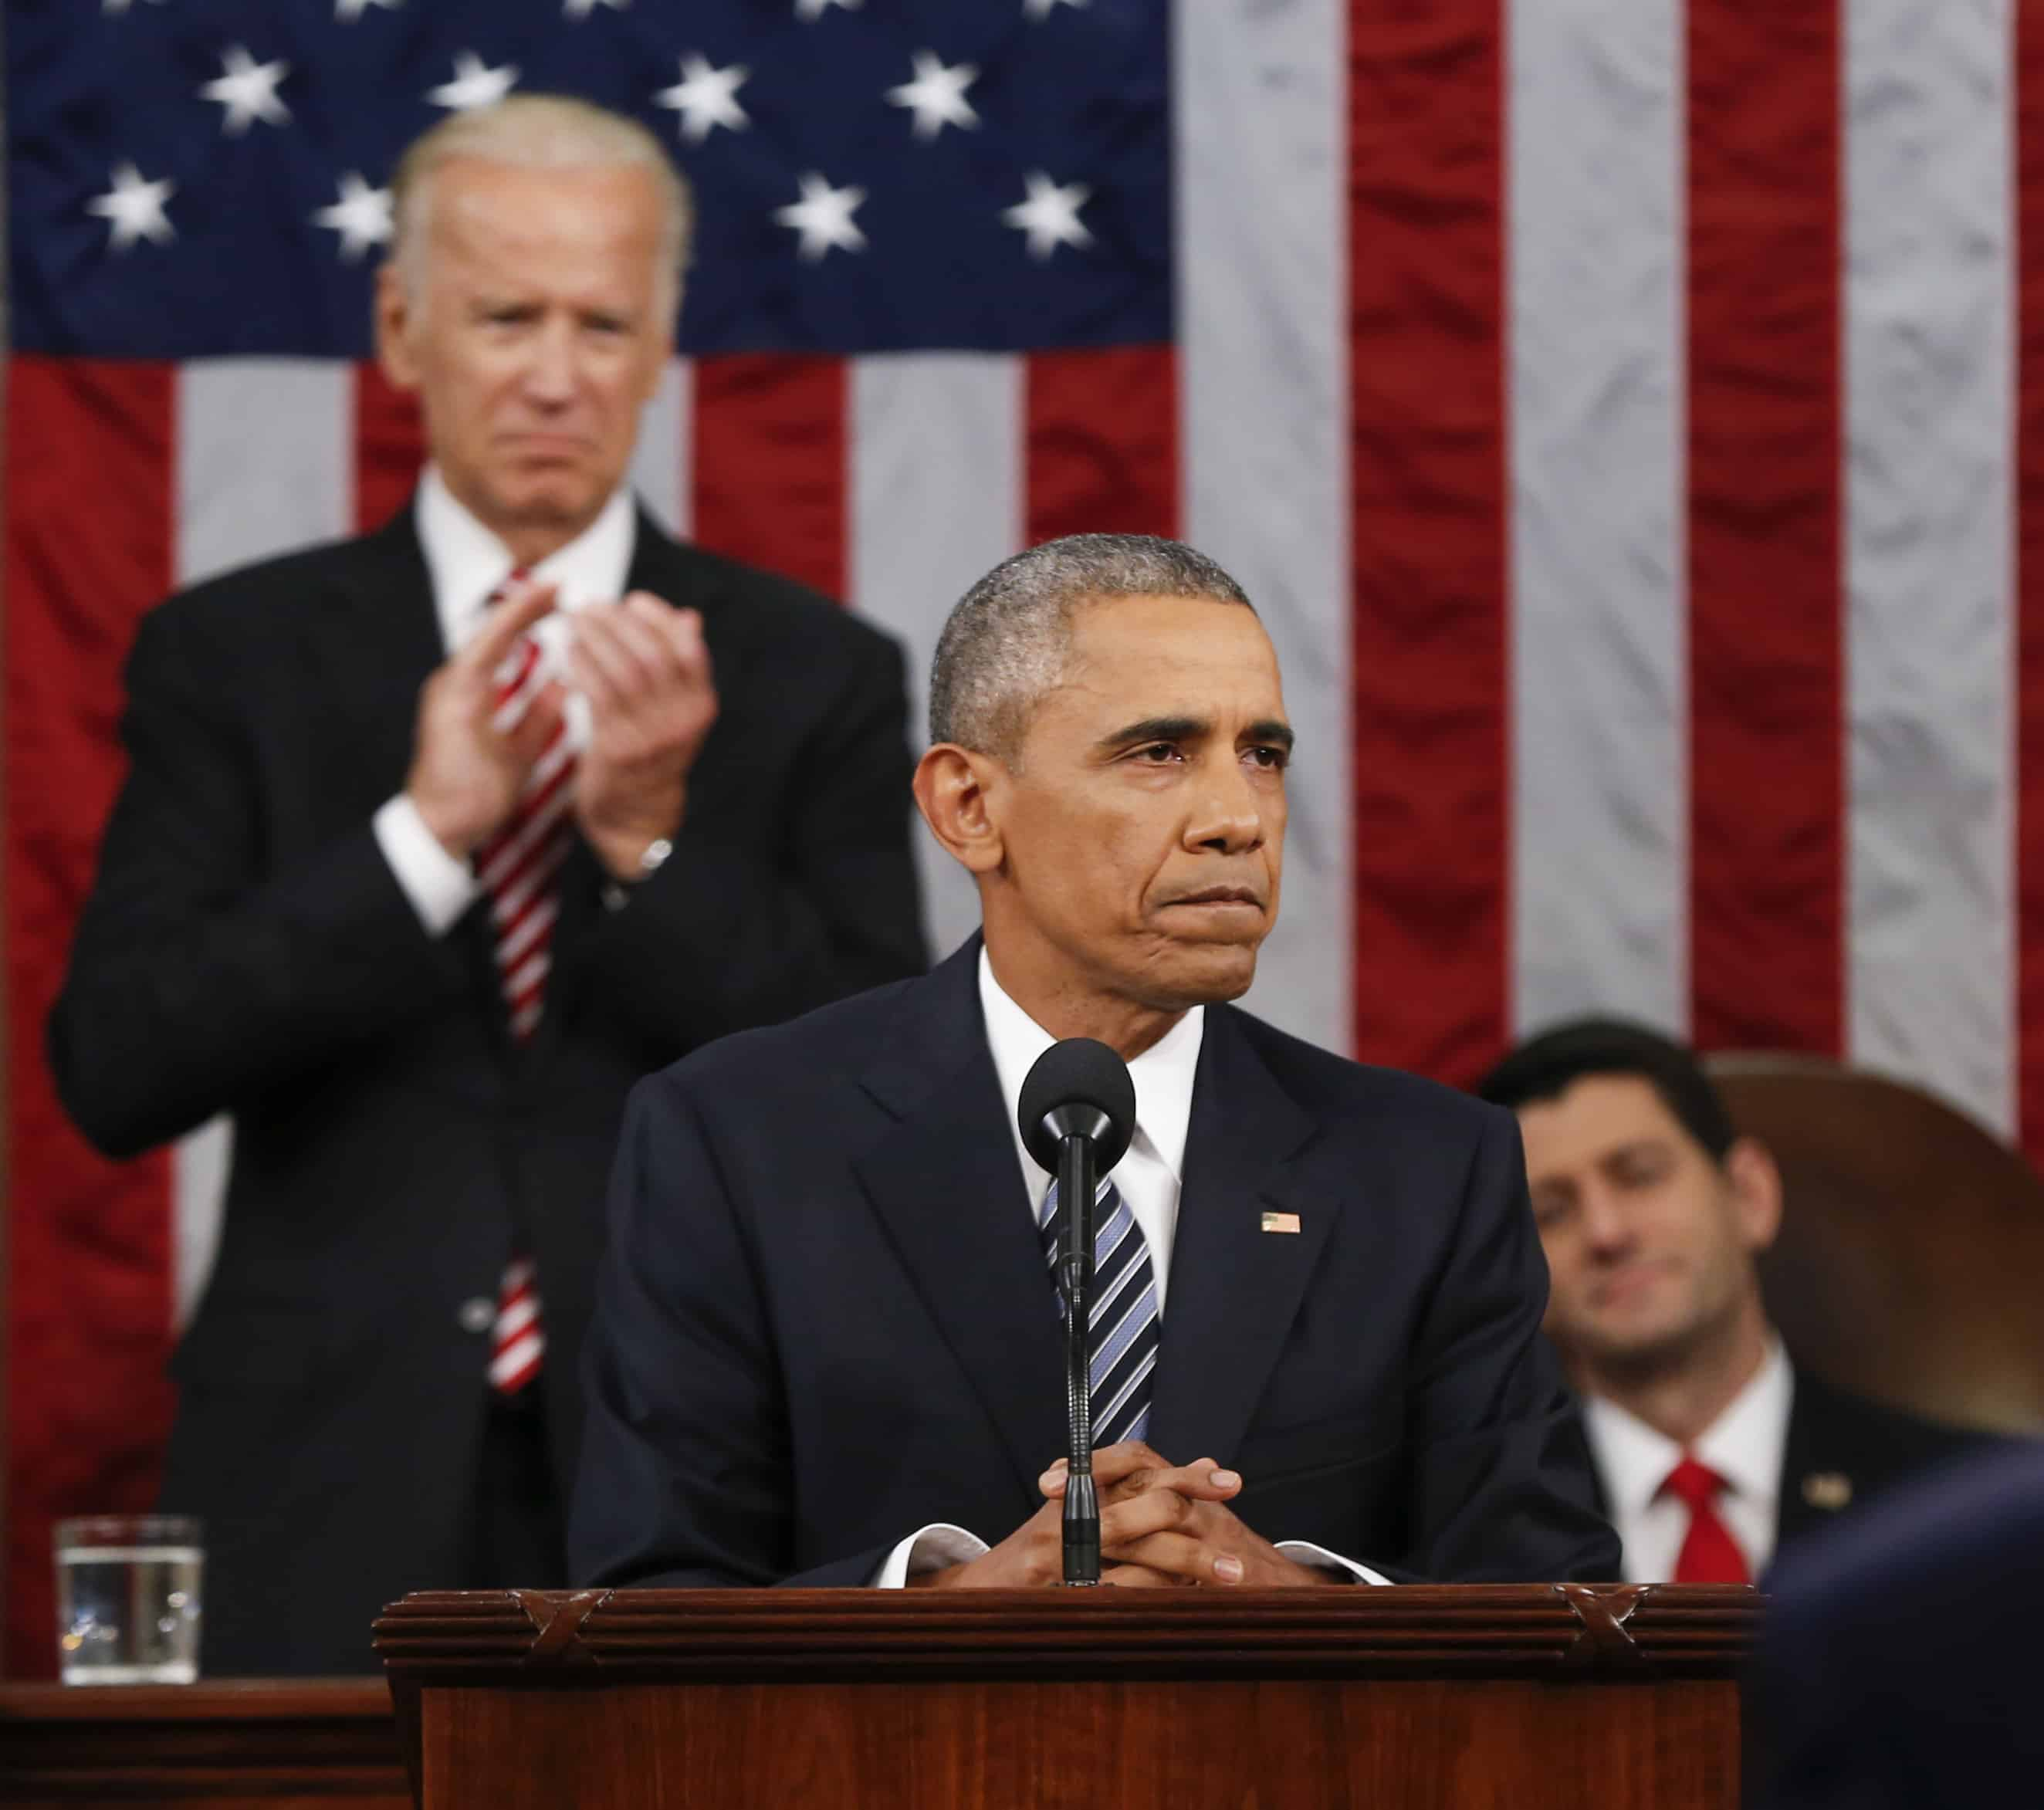 US President Barack Obama taps VP Biden for cancer research during State of the Union speech